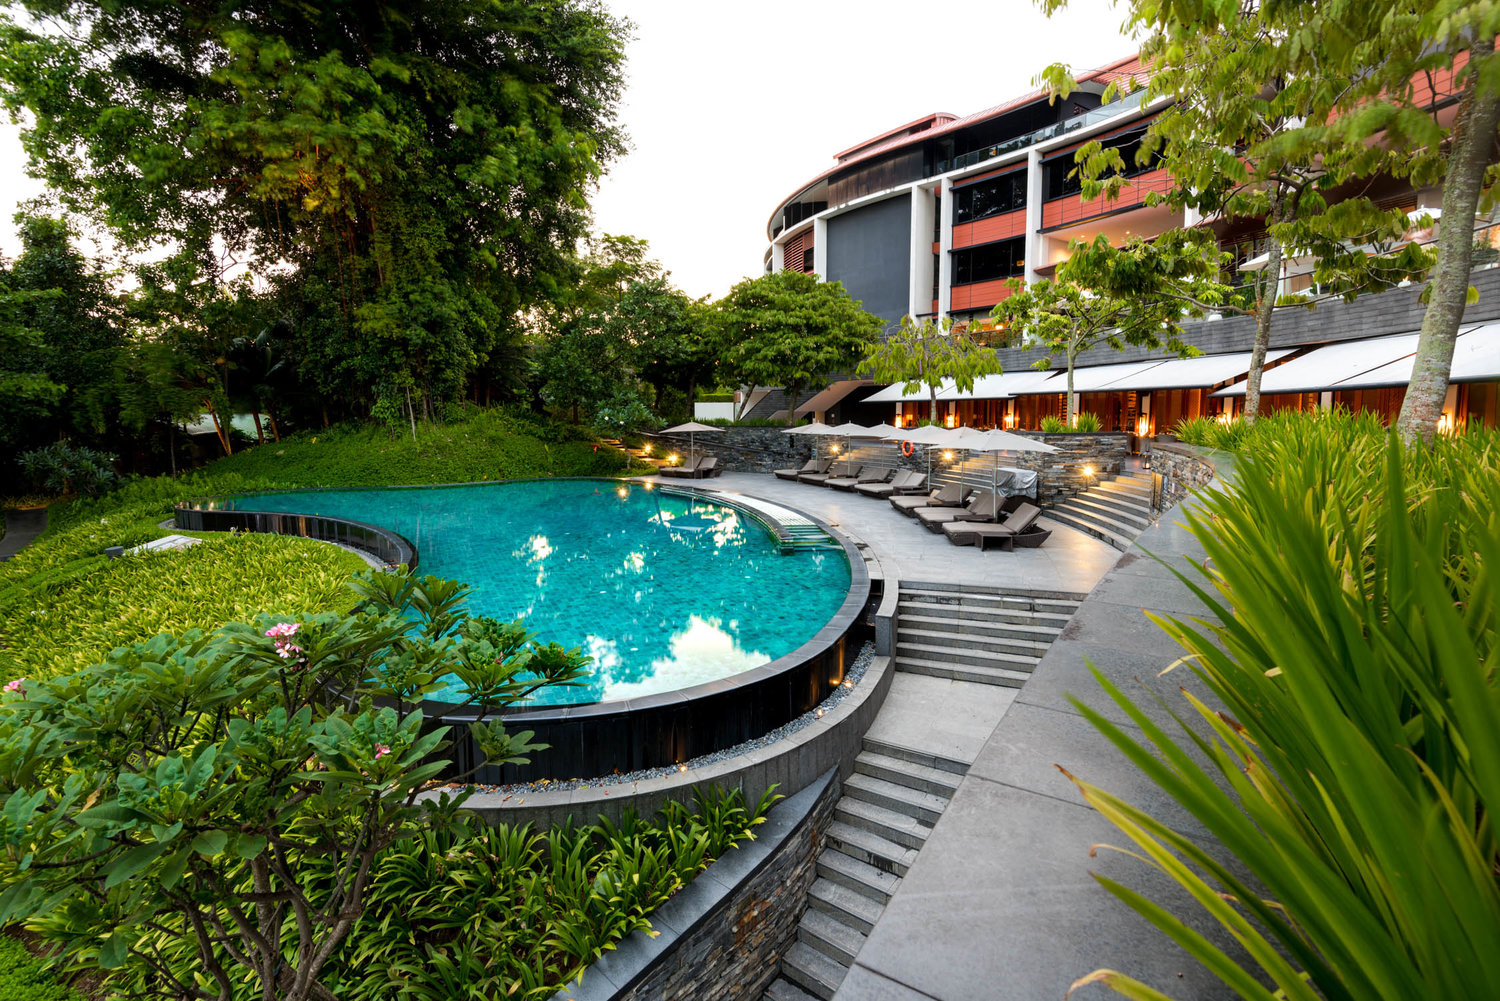 Capella, Singapore: A Luxury Hotel Escape on Sentosa Island